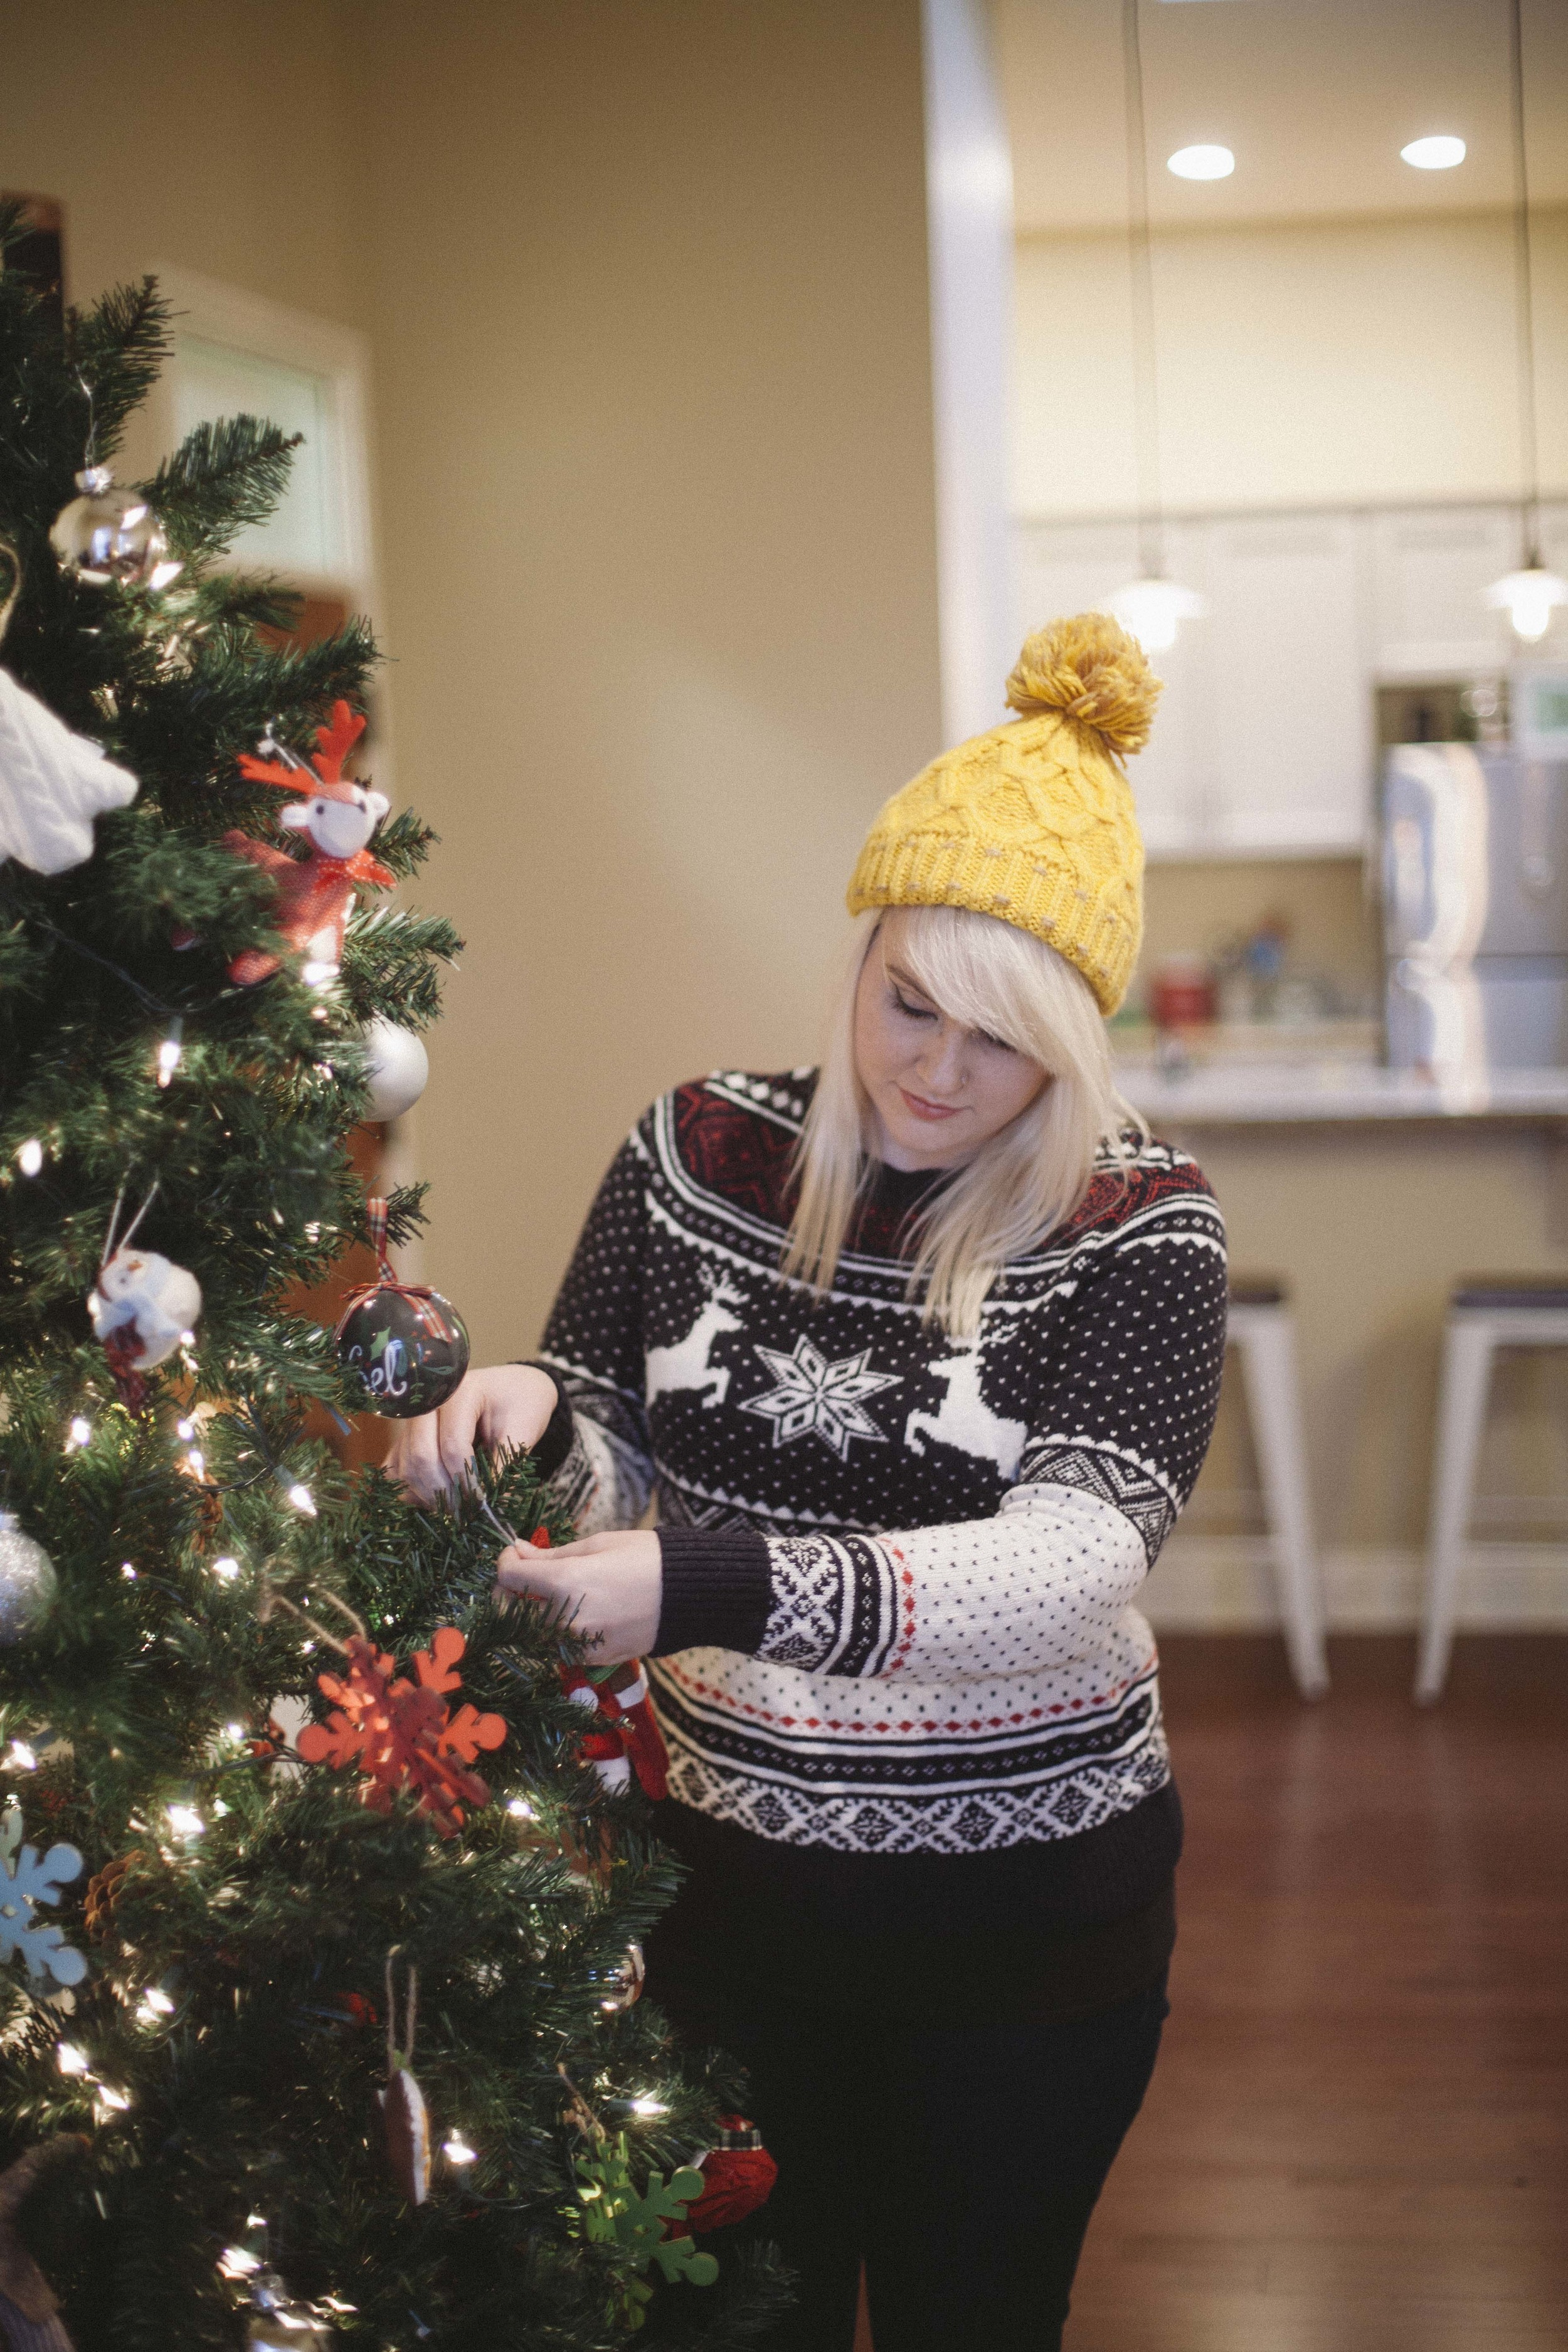 Christmas sweater: H&M, Hat: Target